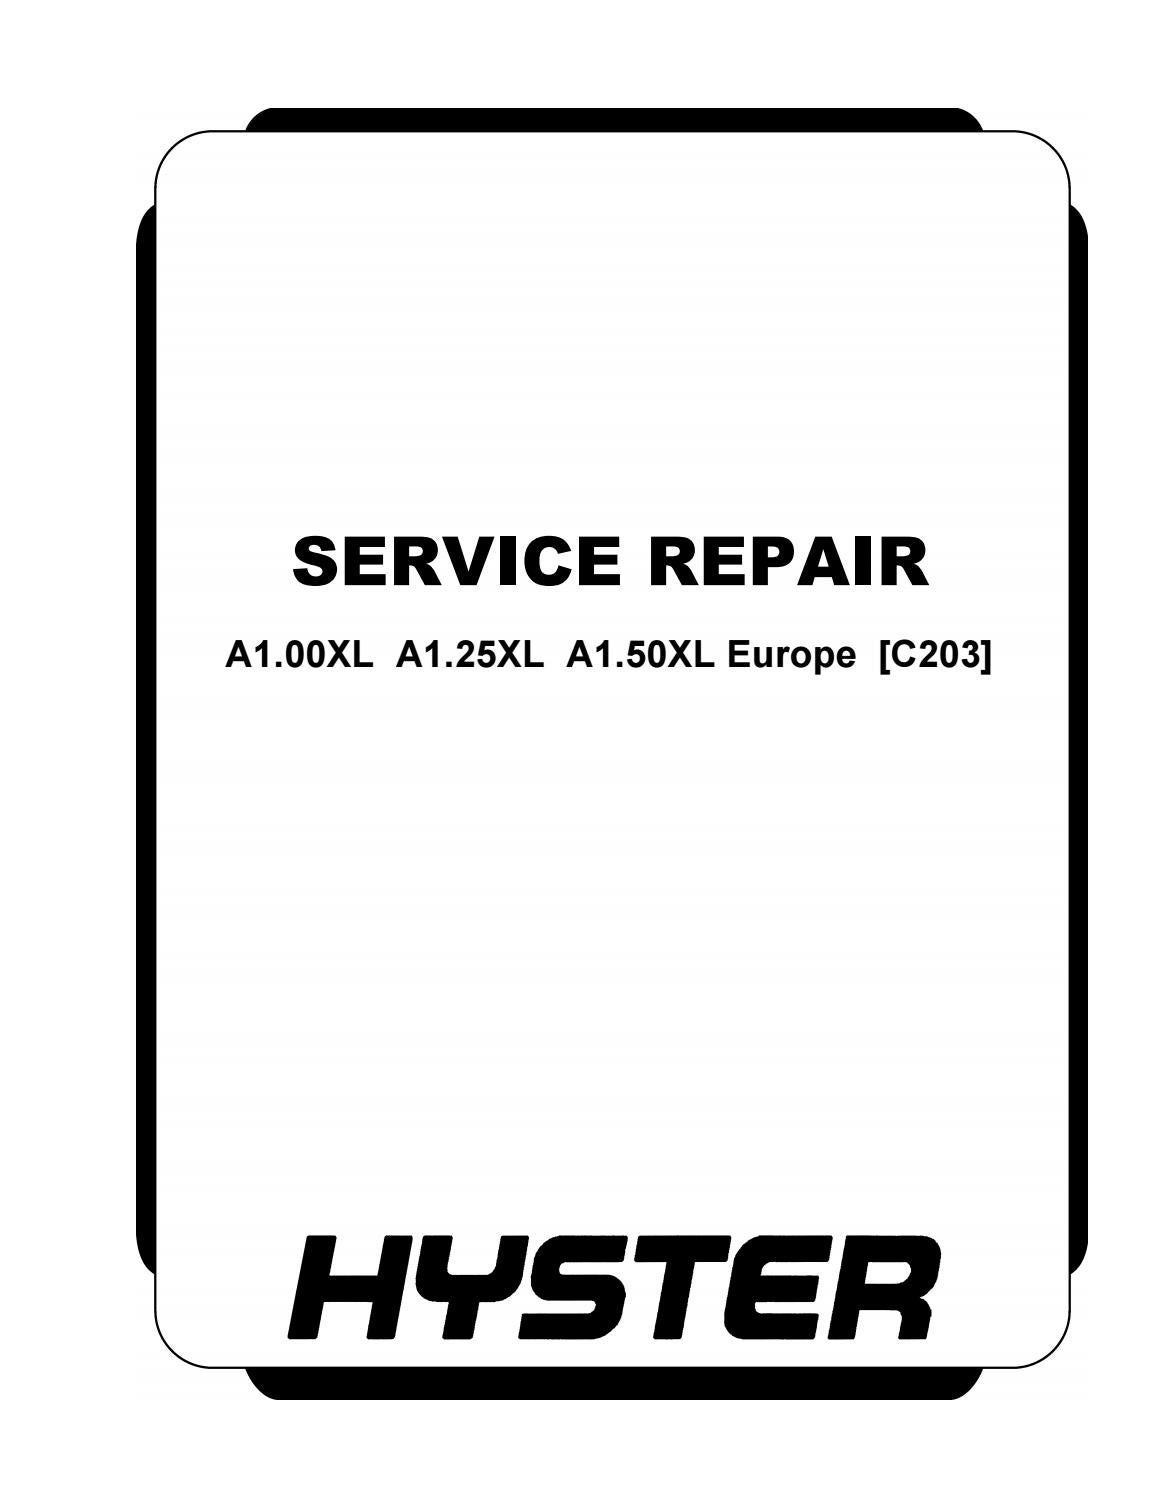 Hyster C203 (A1.25XL Europe) Forklift Service Repair